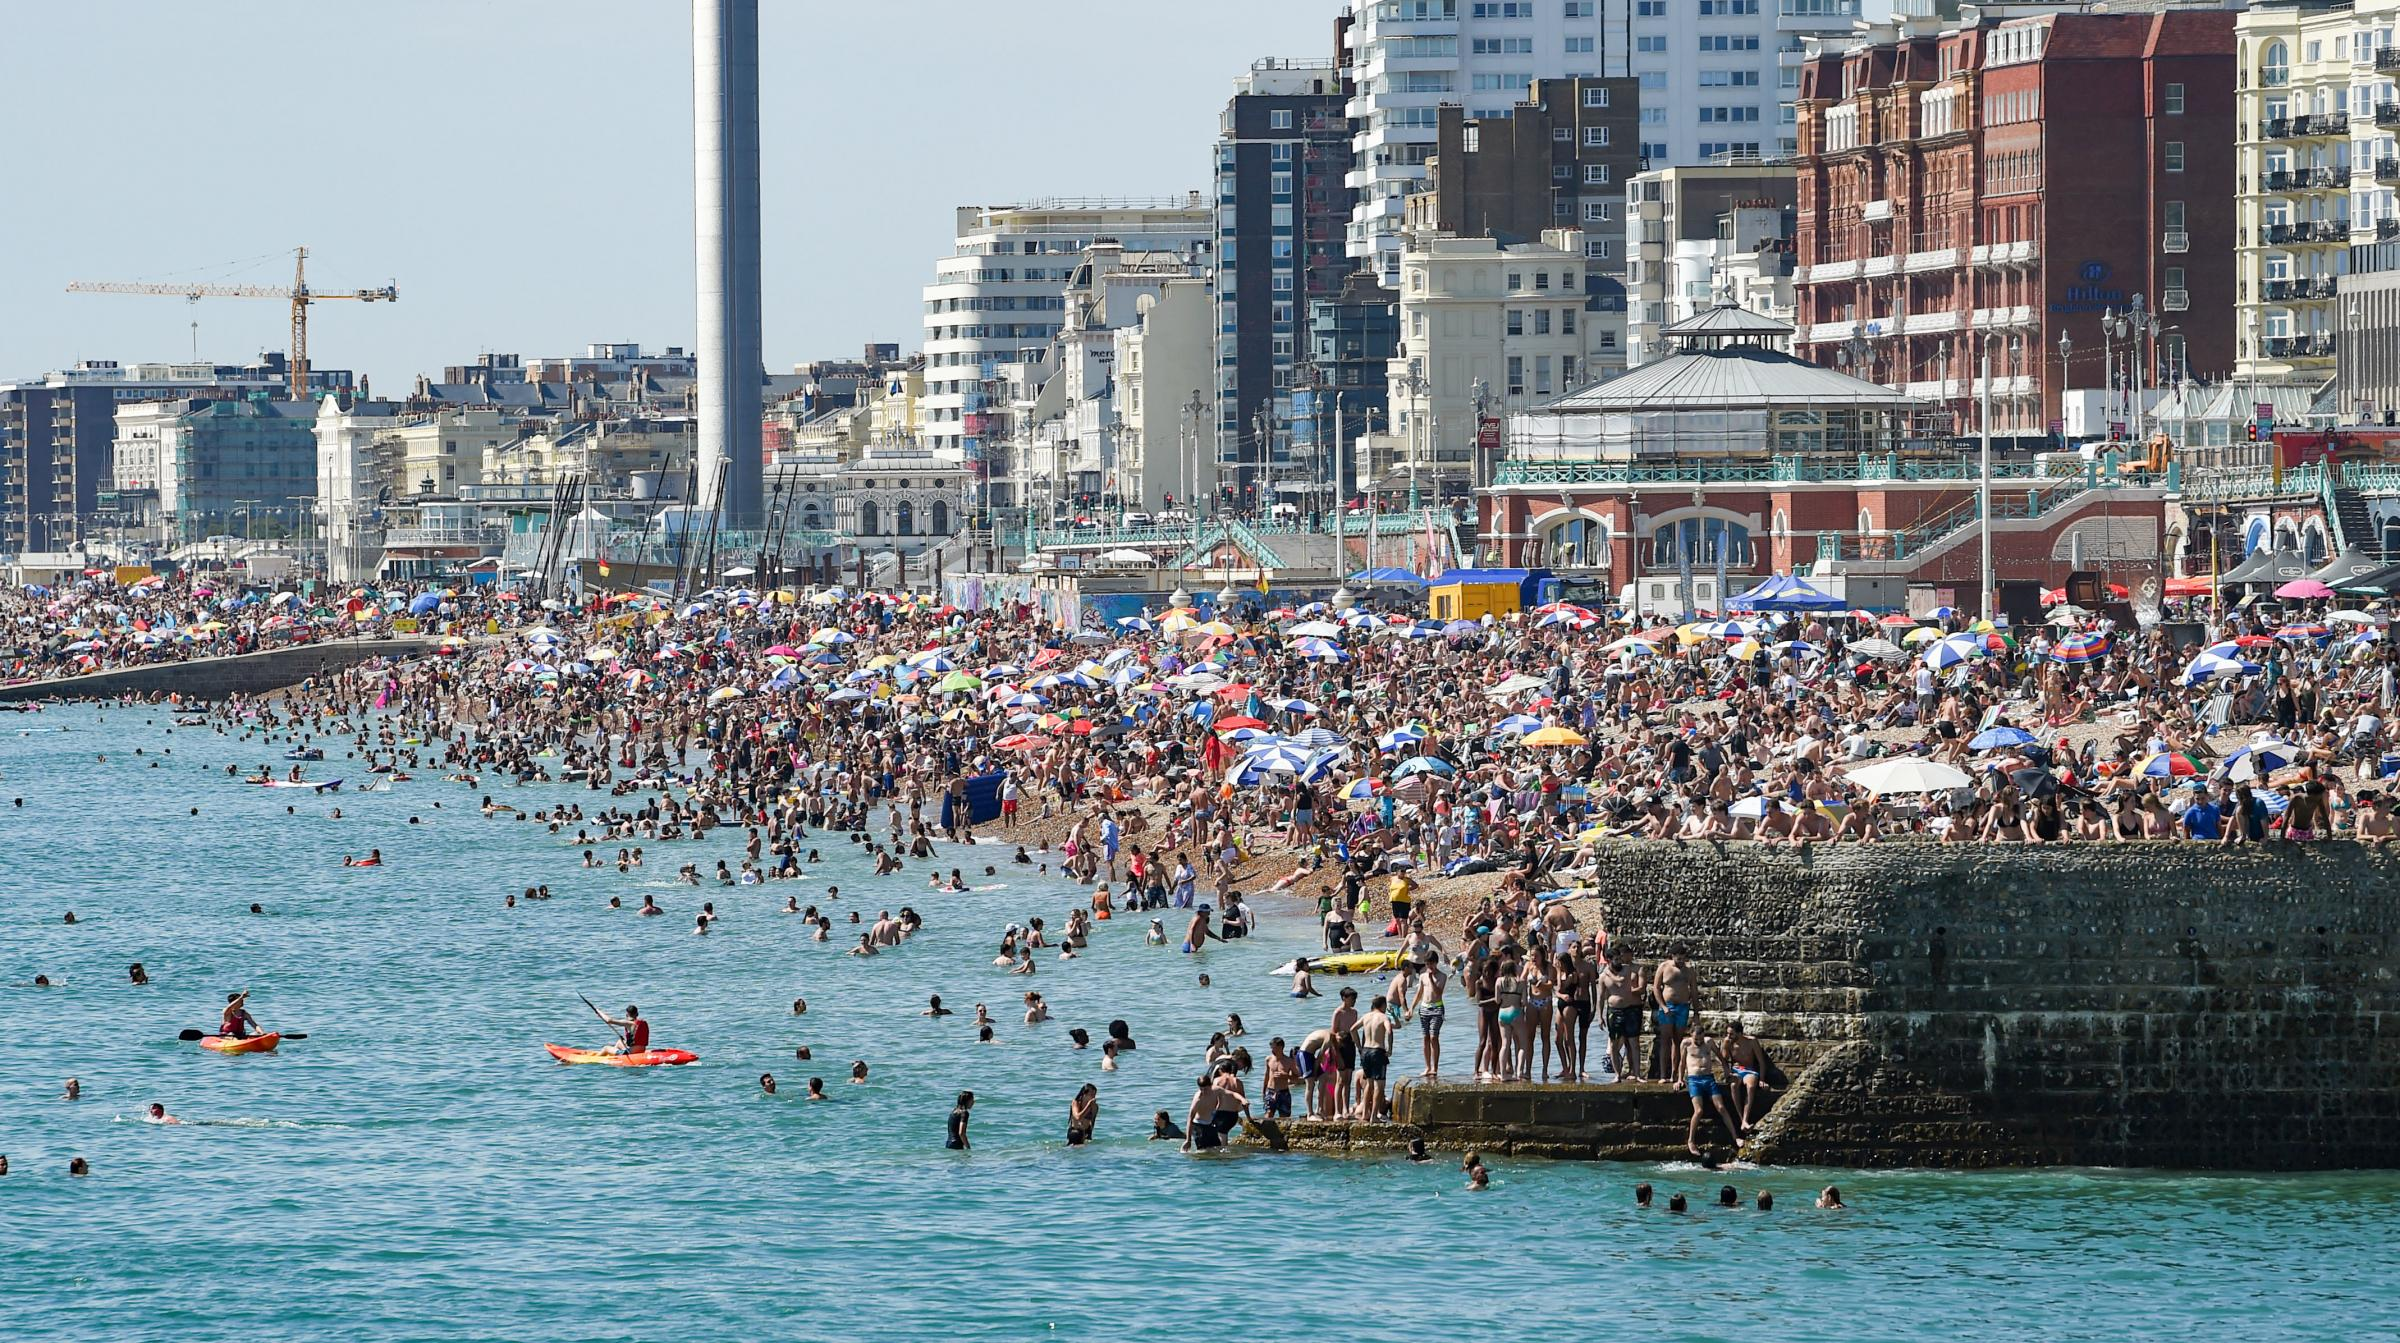 Brighton UK 7th August 2020 - Crowds flock to Brighton beach as they enjoy the sunshine on what has been predicted to be the hottest day of the year so far with temperatures reaching the high 30 in some parts of the South East today : Credit Simon Dack /